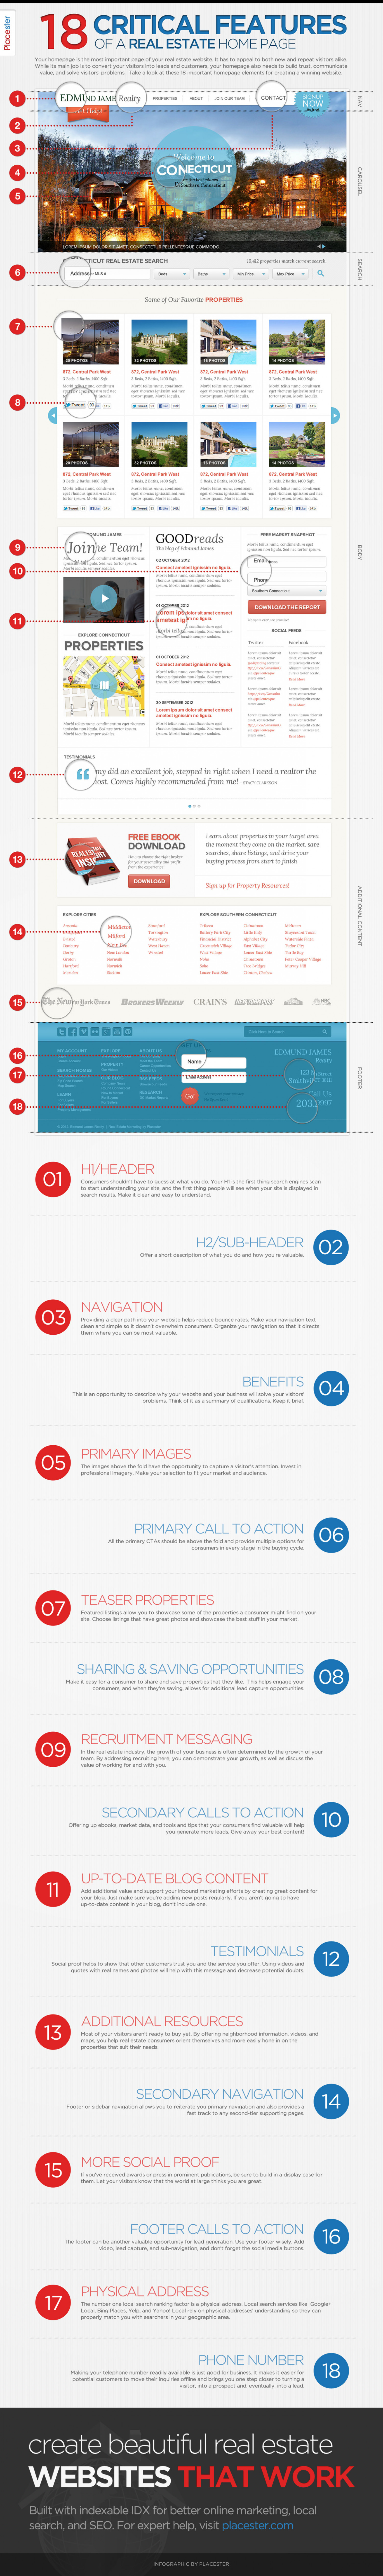 Anatomy of a Real Estate Website Infographic